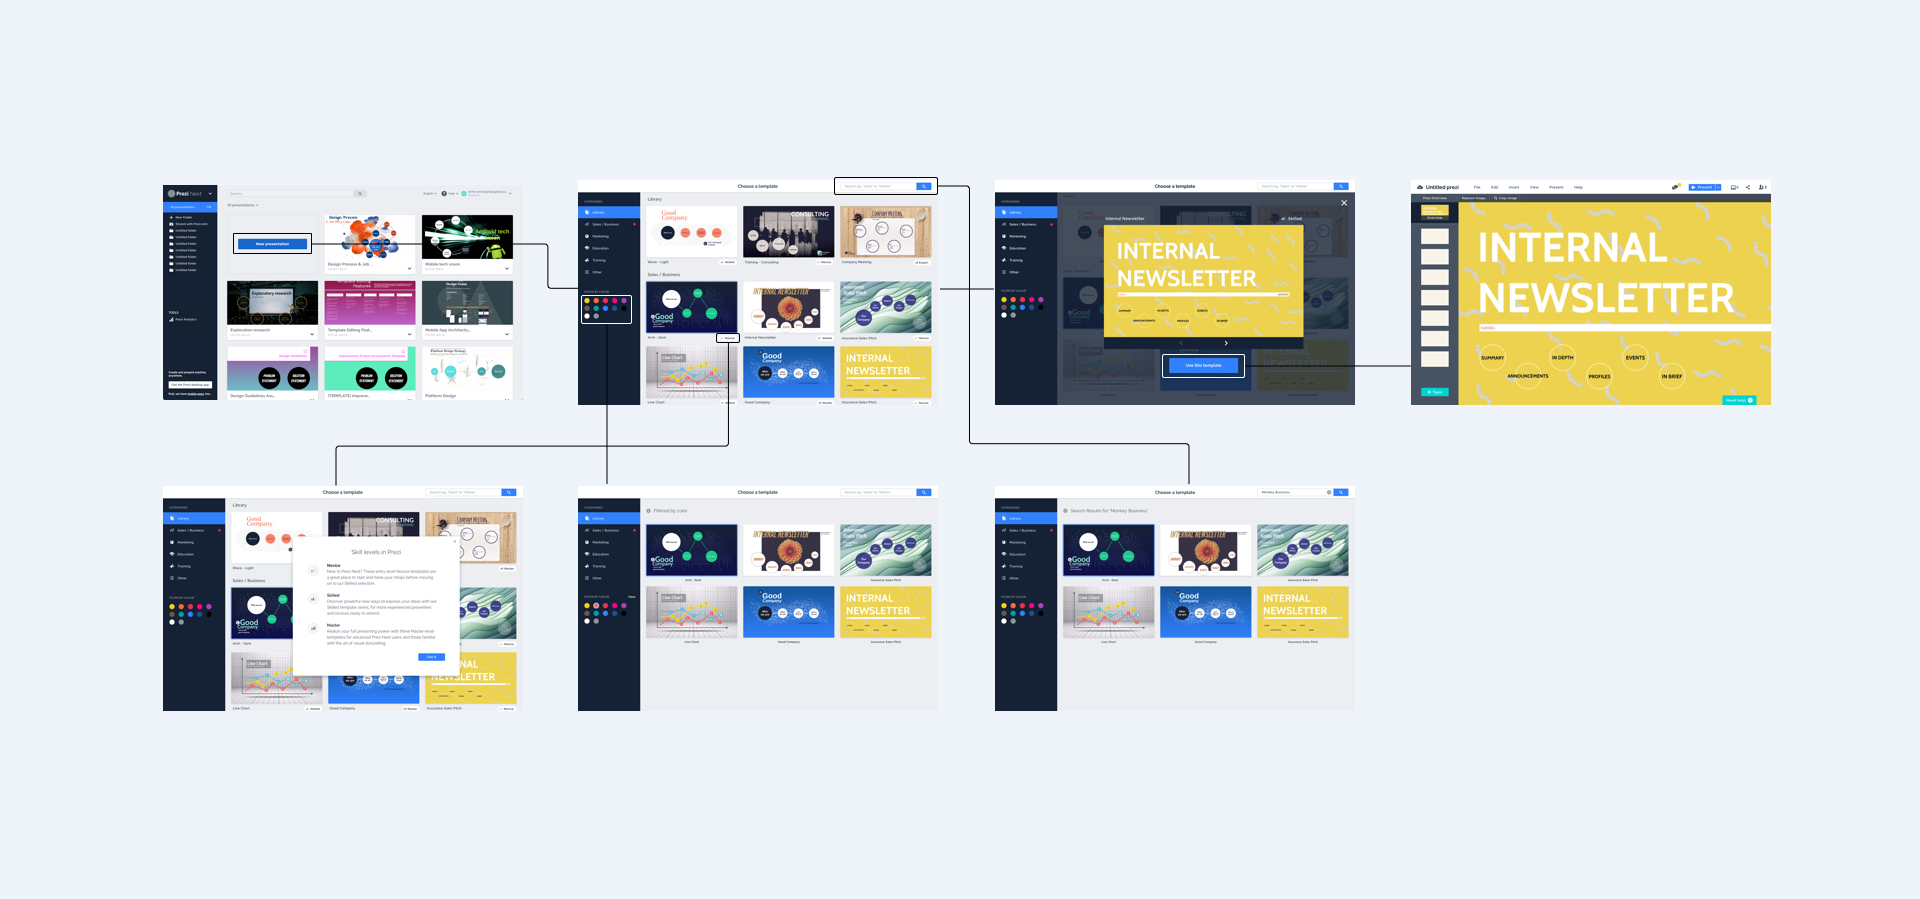 User flow for navigating through the template chooser